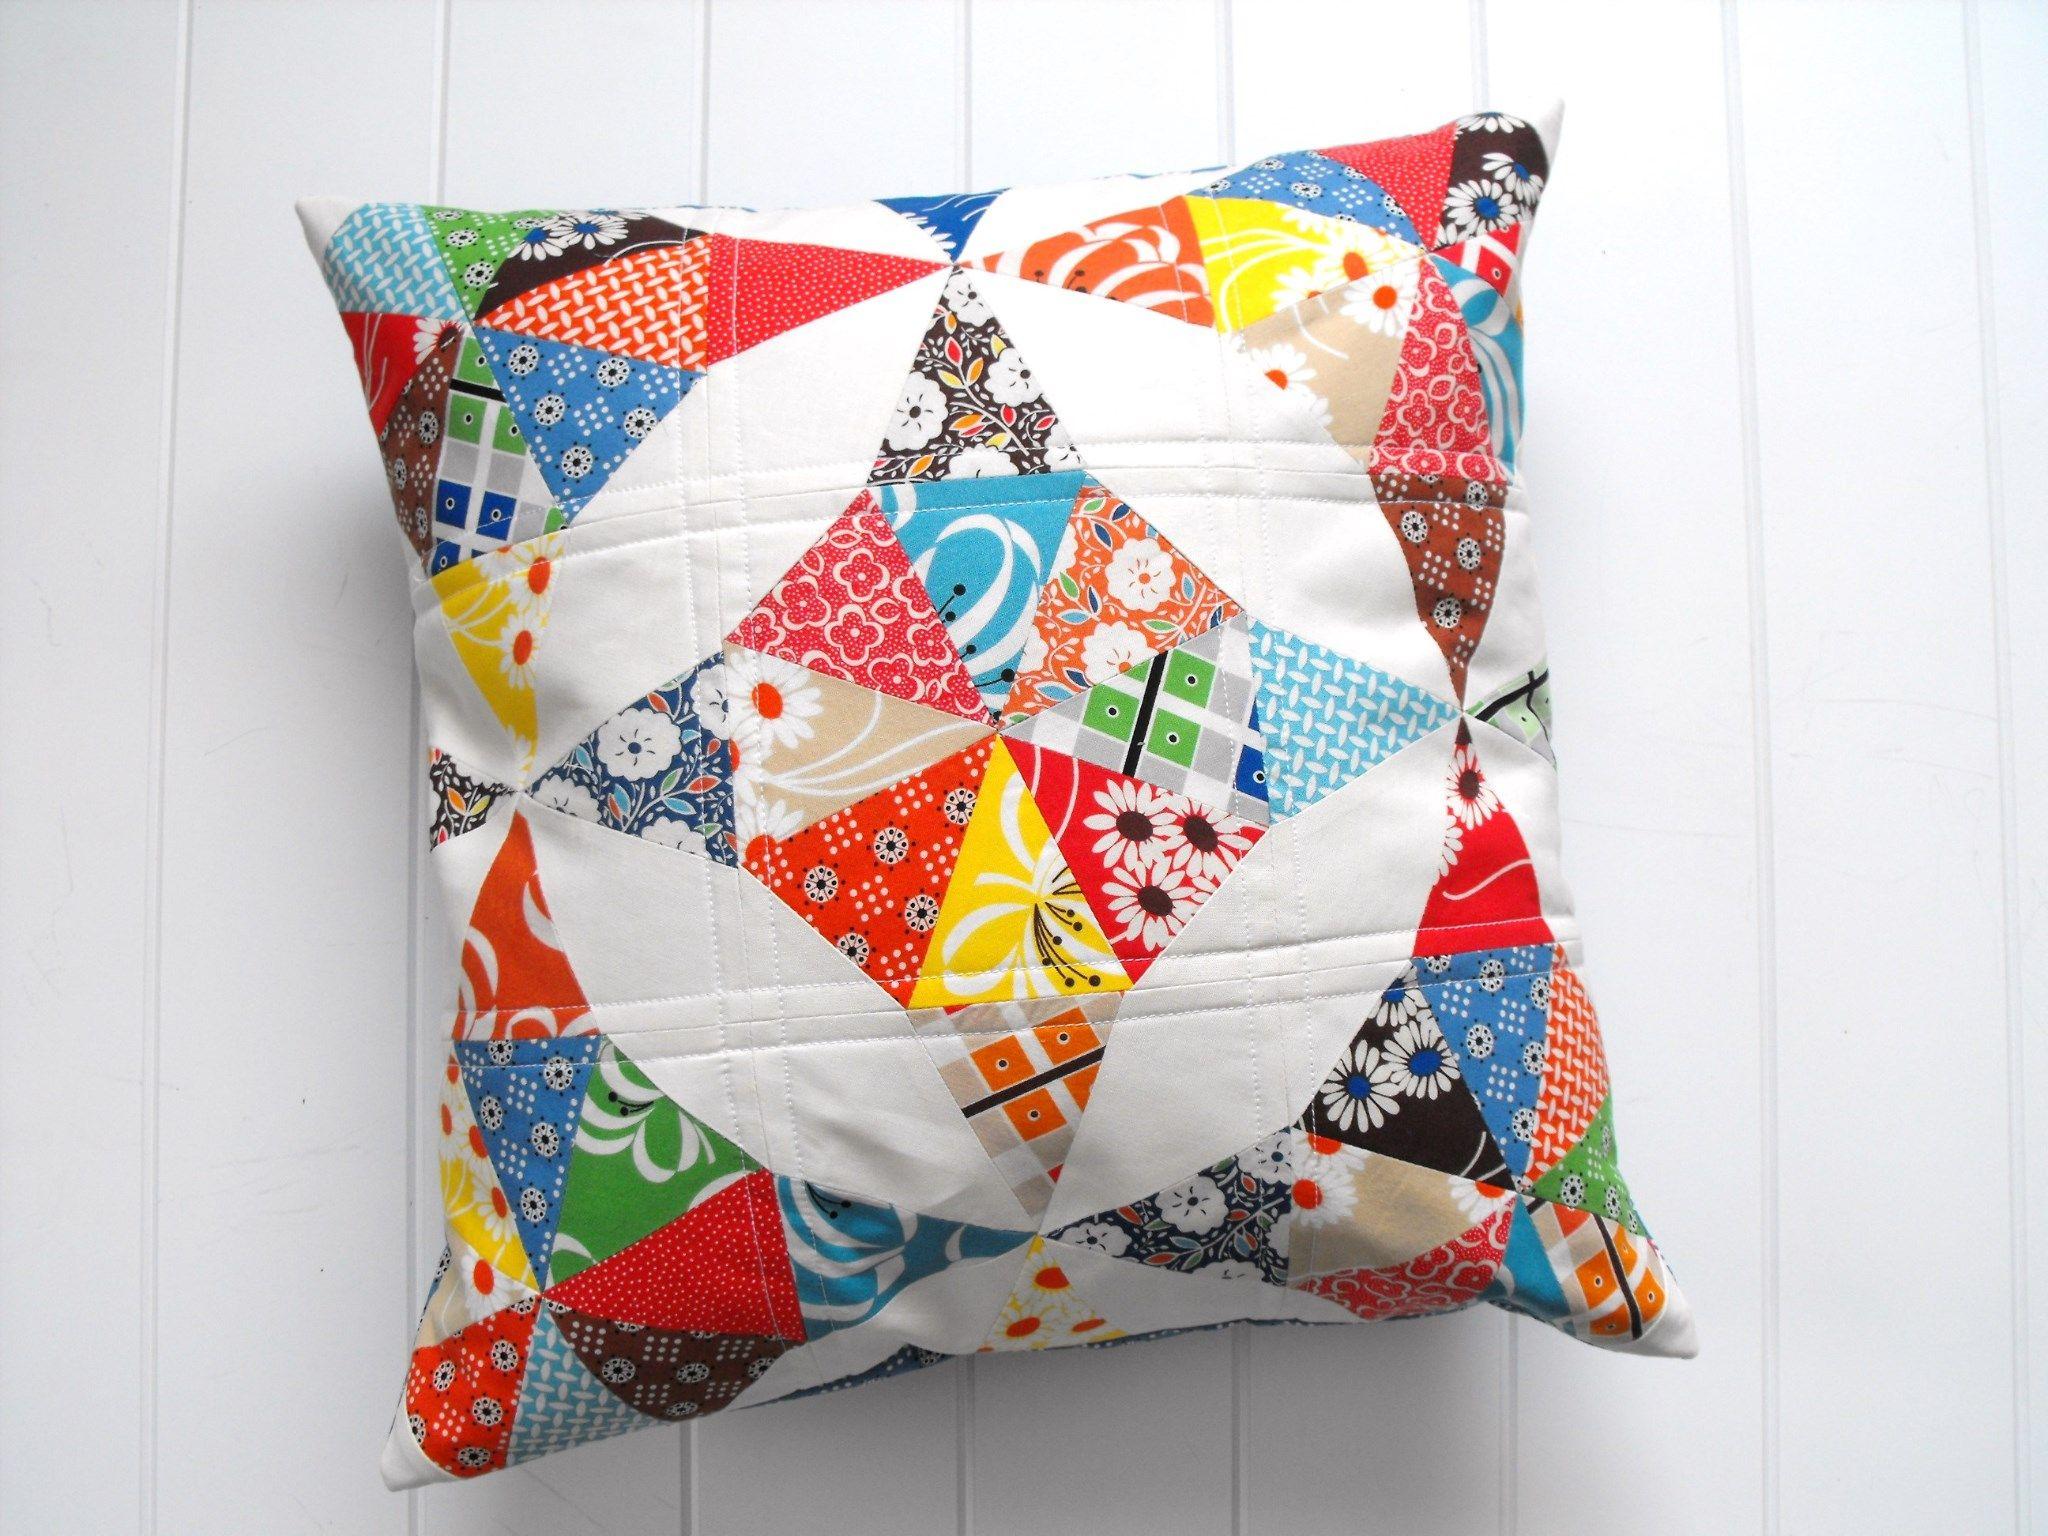 How to sew a pillow with your own hands